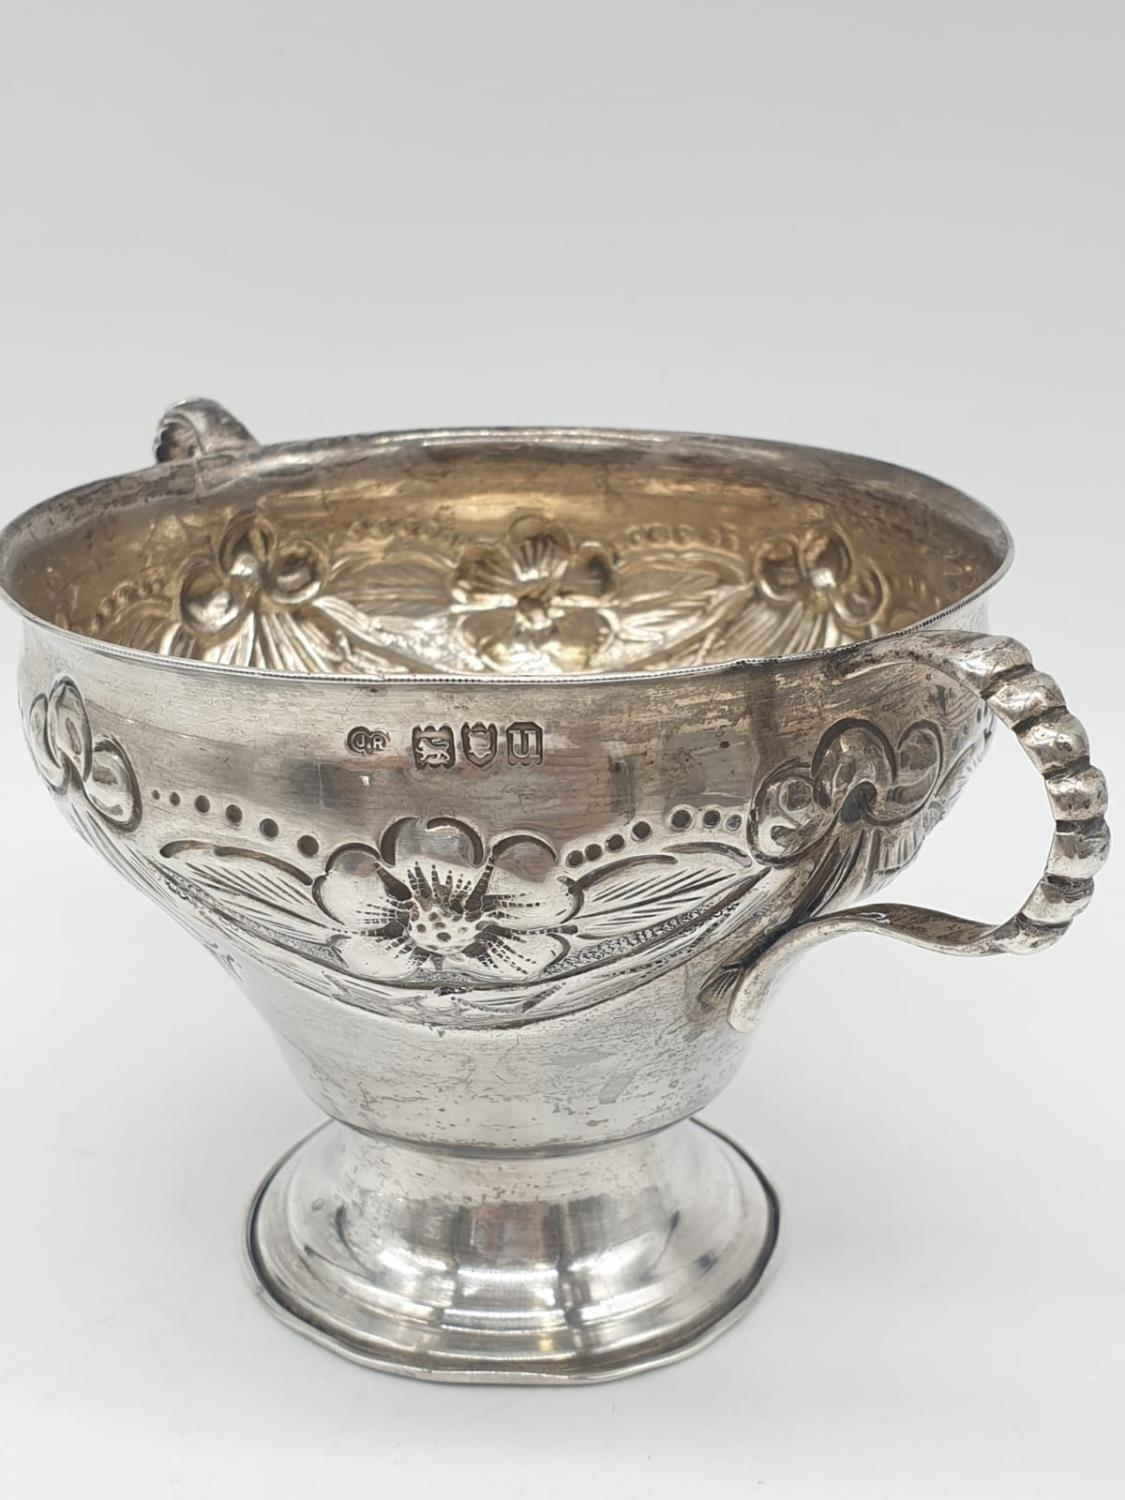 Silver CHALICE with handles. Hand decorated 8cm tall 9cm diameter. 129g - Image 5 of 7